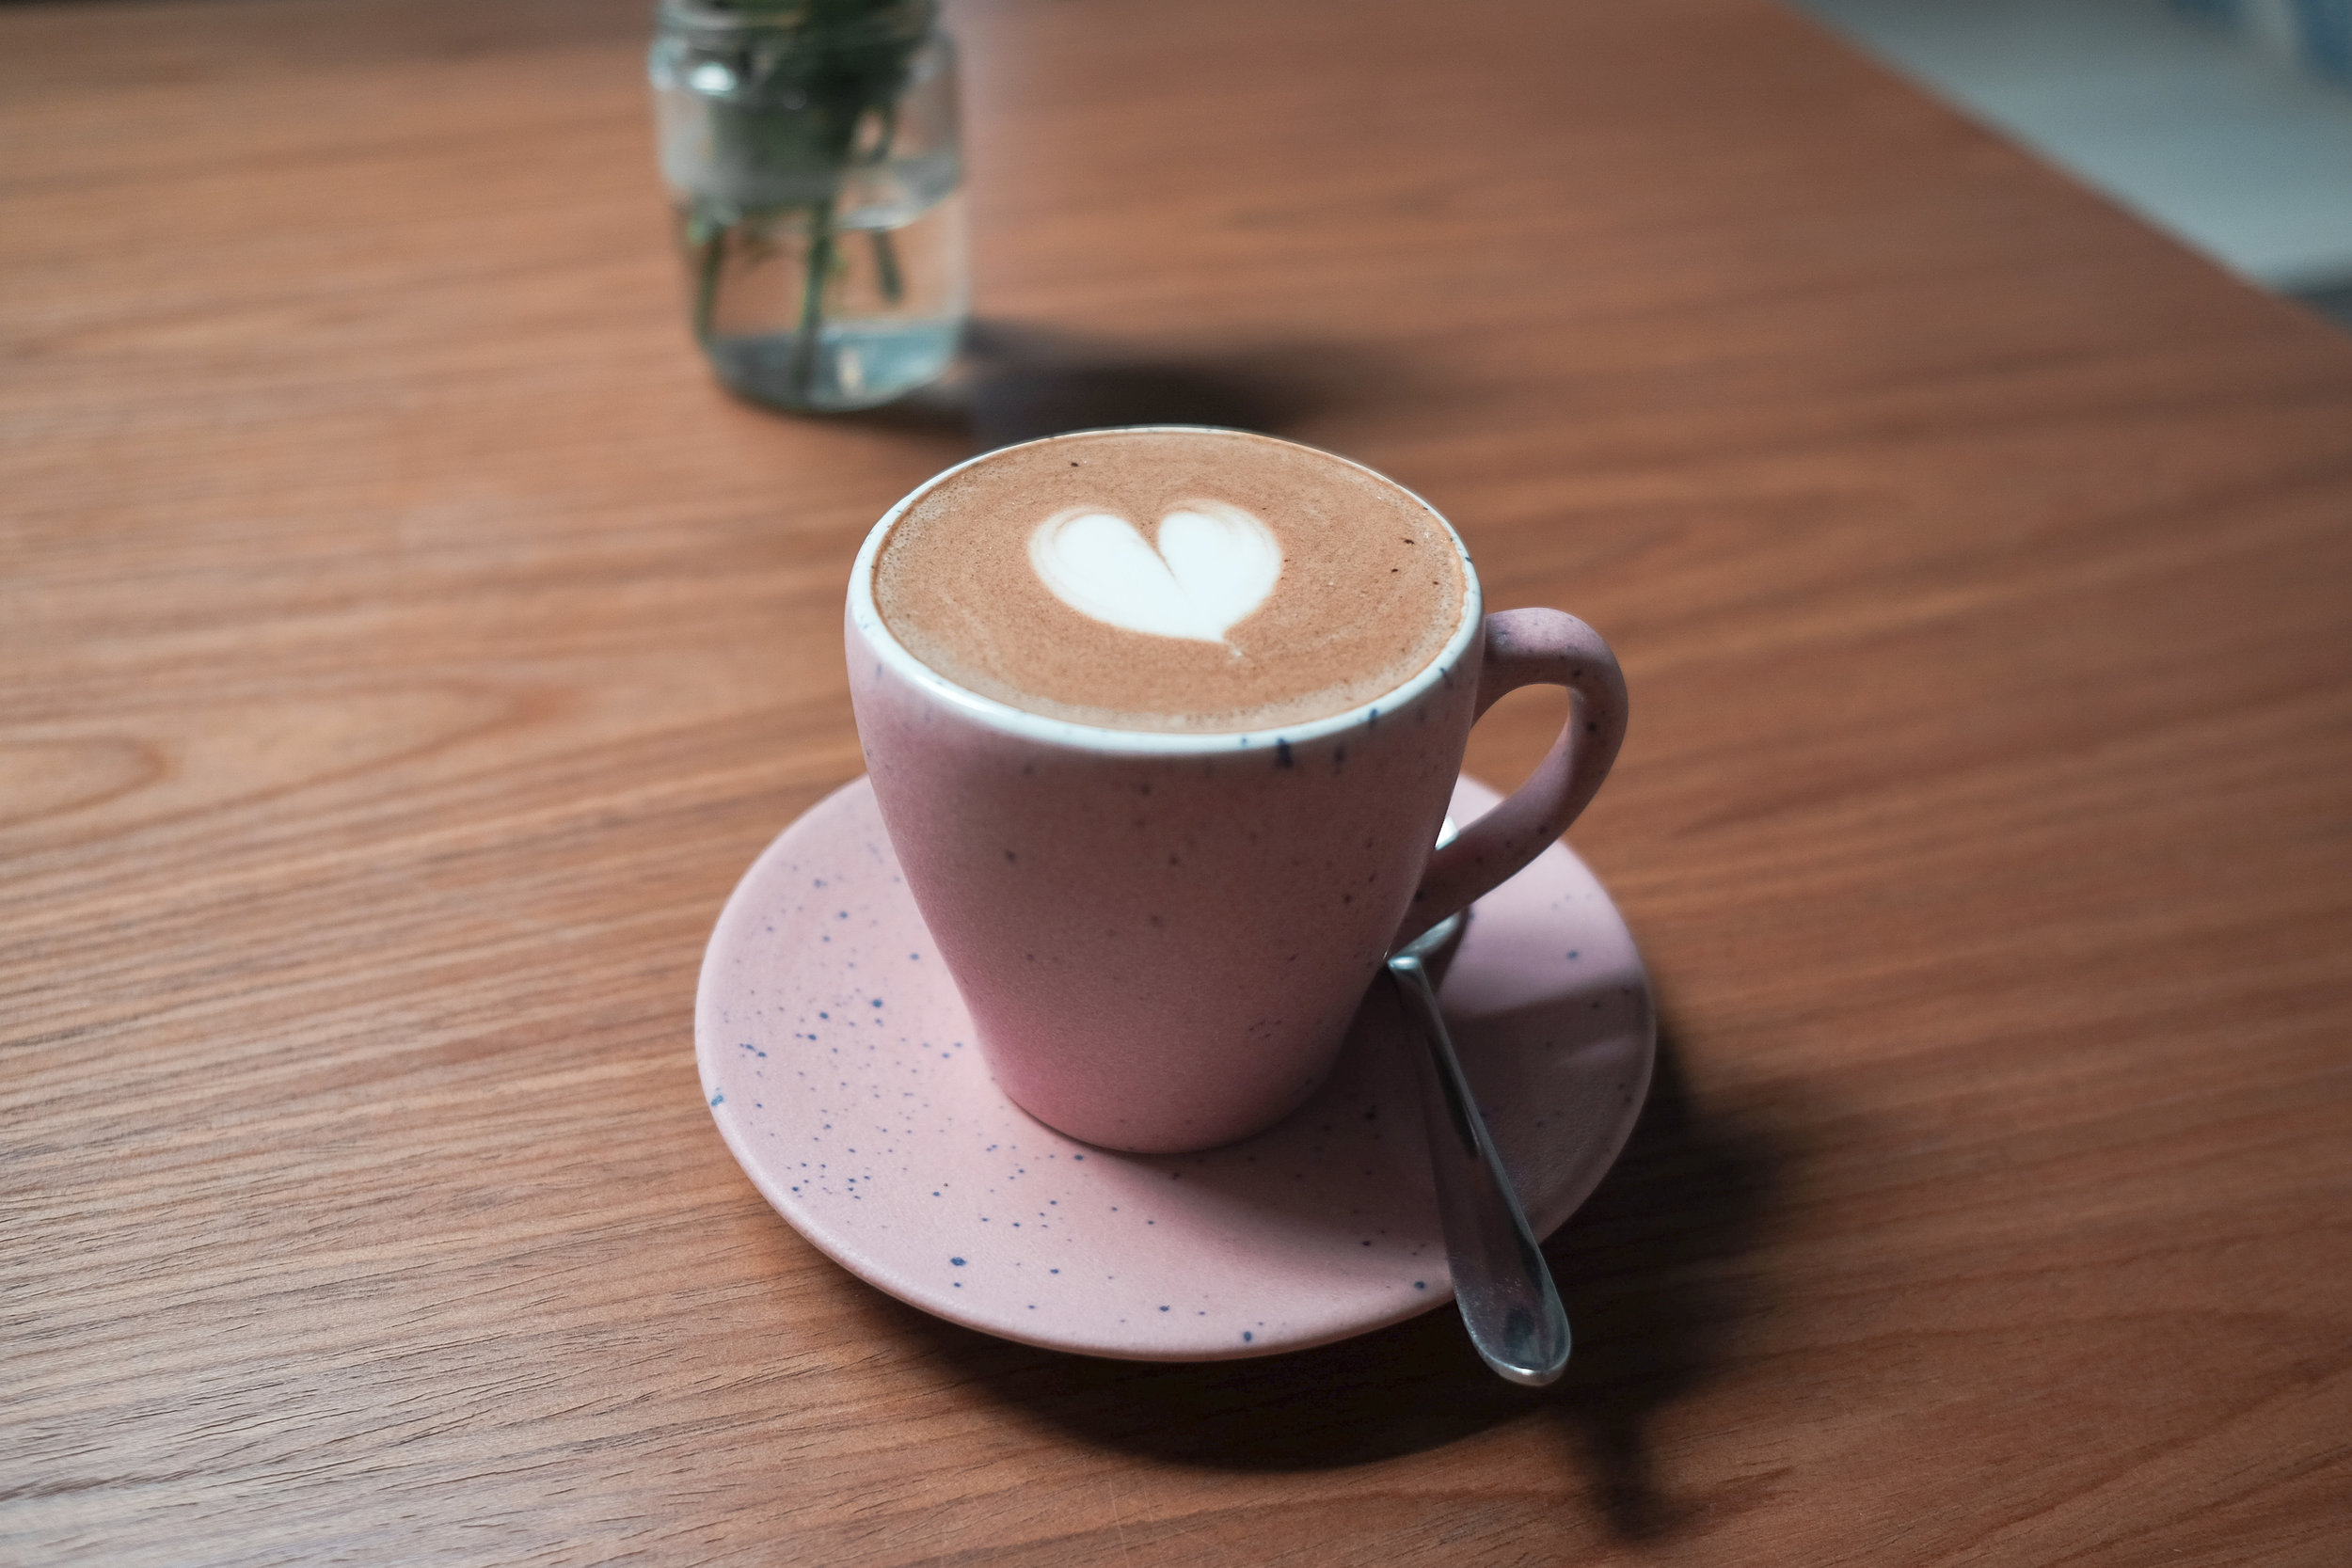 cups-coffee-kitchen-5